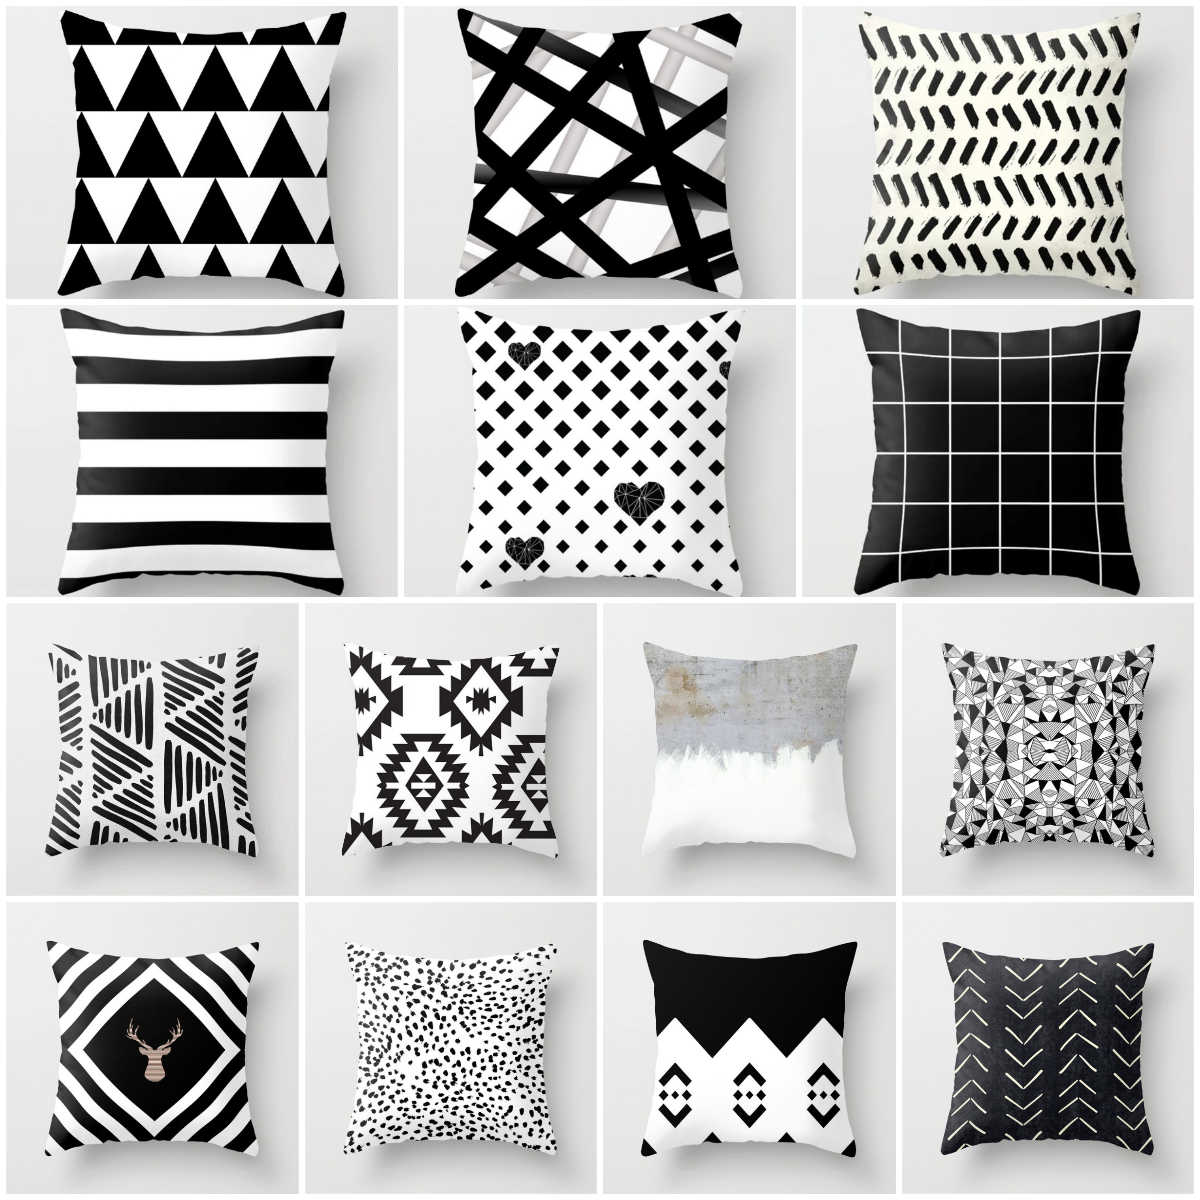 45*45CM Nordic Black and White Cushion Cover Polyester Geometric Throw Pillow Cover Decorative Sofa Pillows Fashion Pillowcase